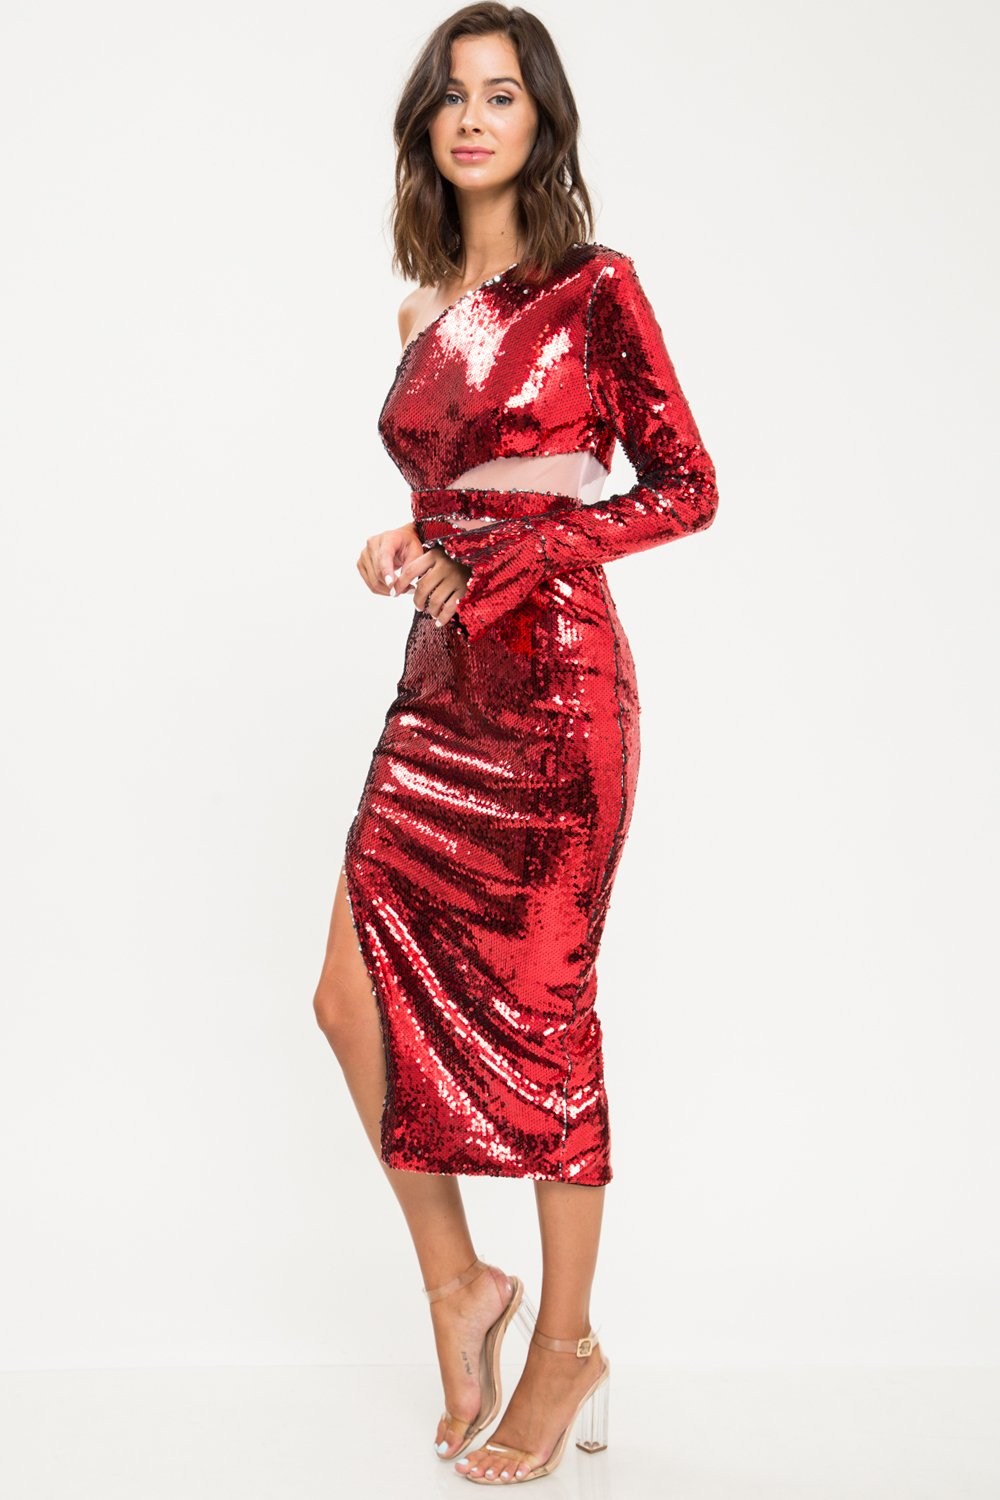 Red Sequins One Shoulder Midi Dress - STEVEN WICK